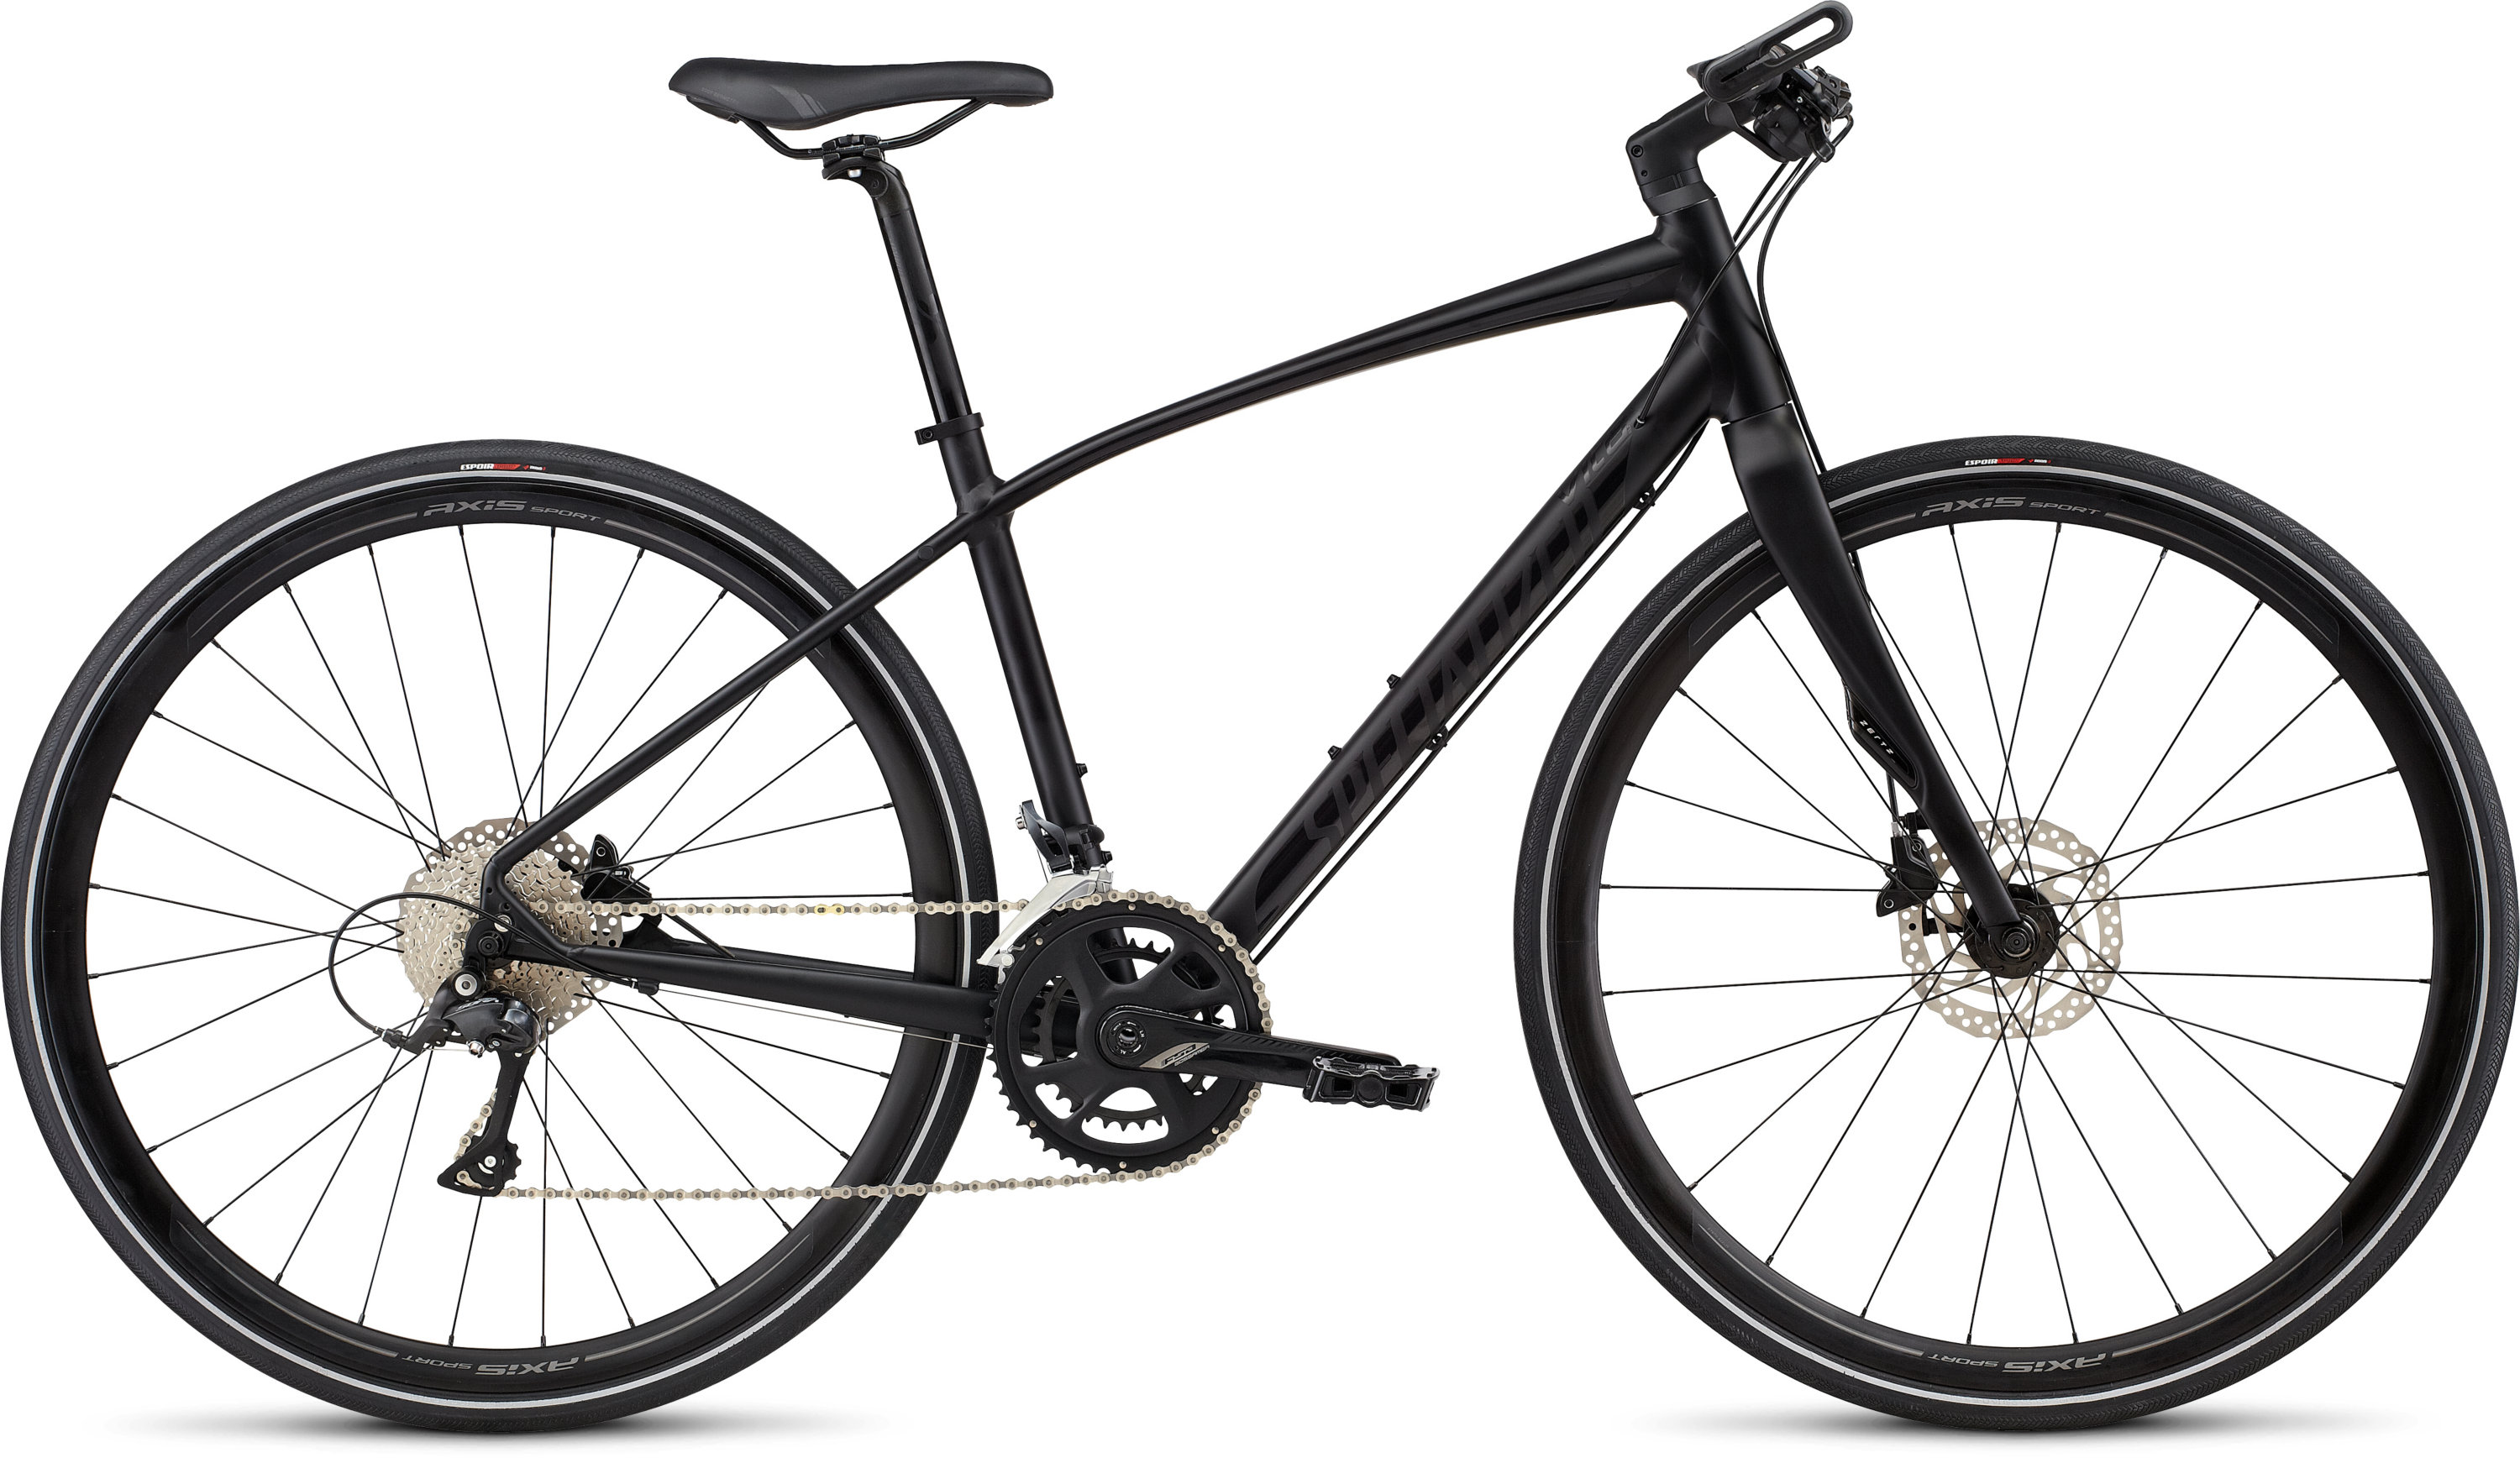 SPECIALIZED VITA ELITE TARBLK/TARBLK XL - SPECIALIZED VITA ELITE TARBLK/TARBLK XL